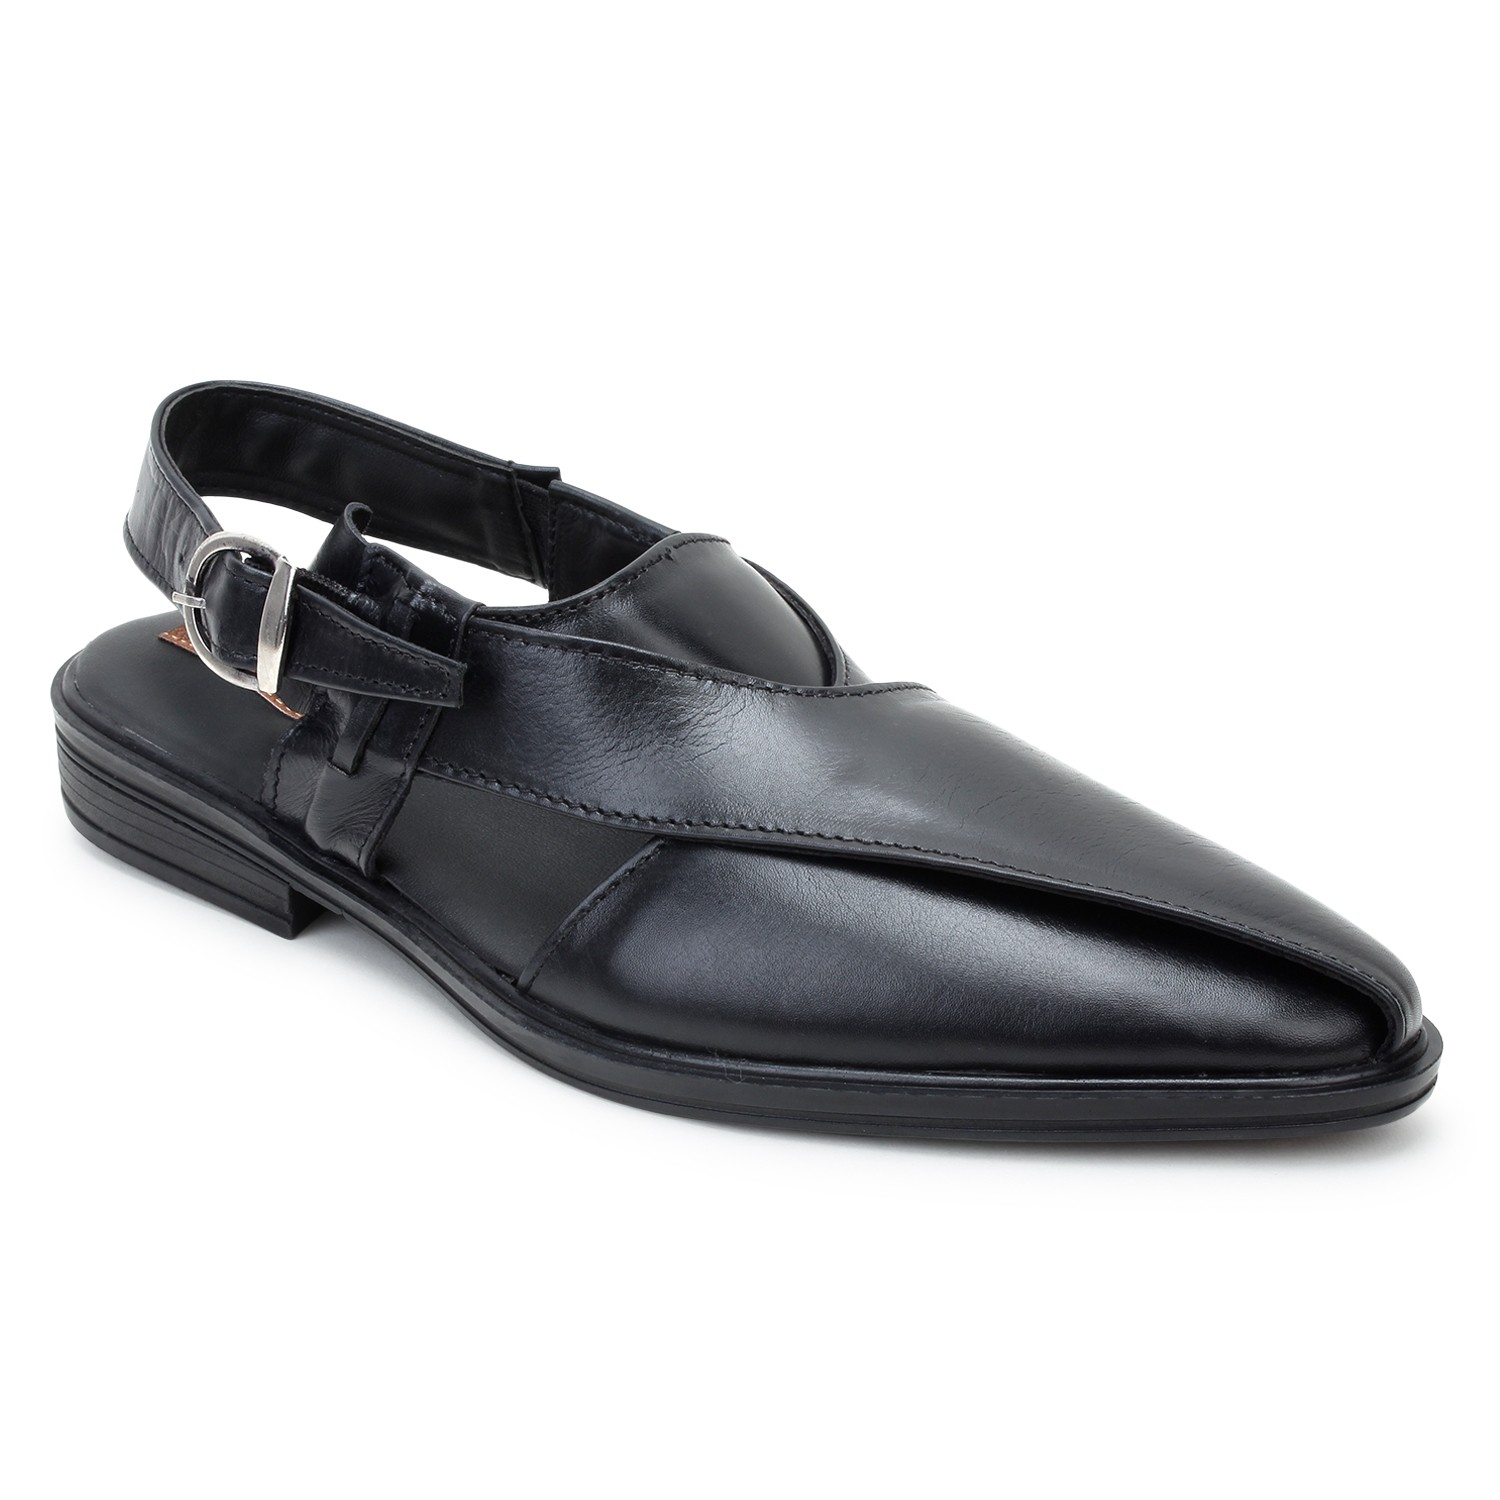 Kosher Leather Black Sandal Men